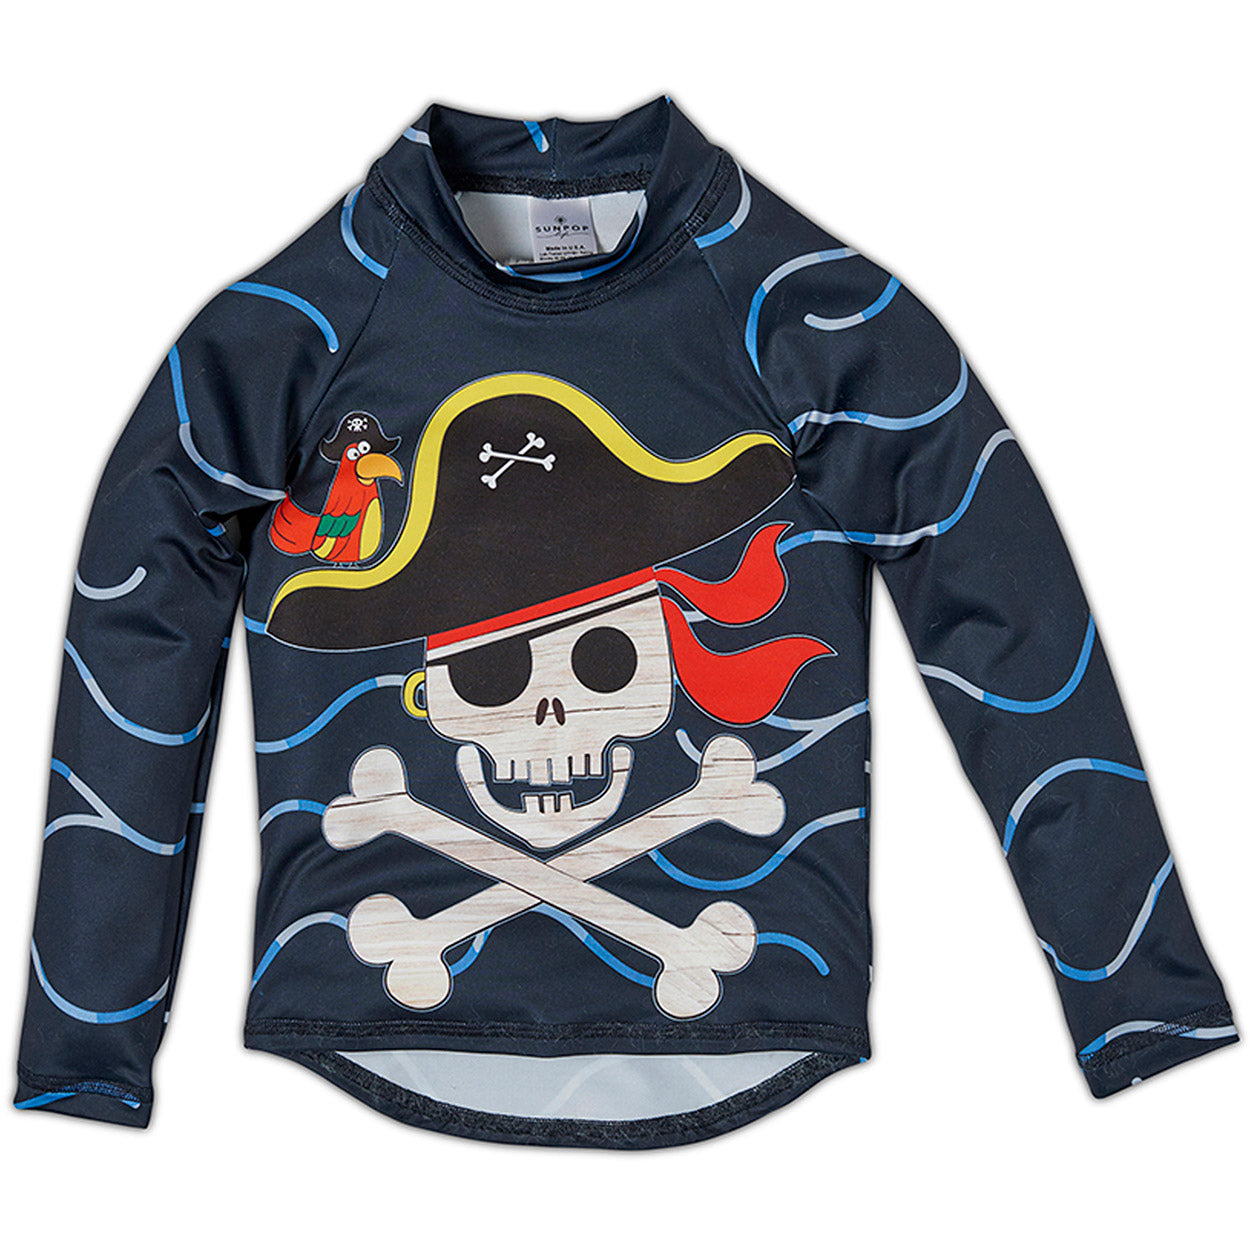 Fun Pirate Top Front Rash Guard Set Boys Sunpoplife